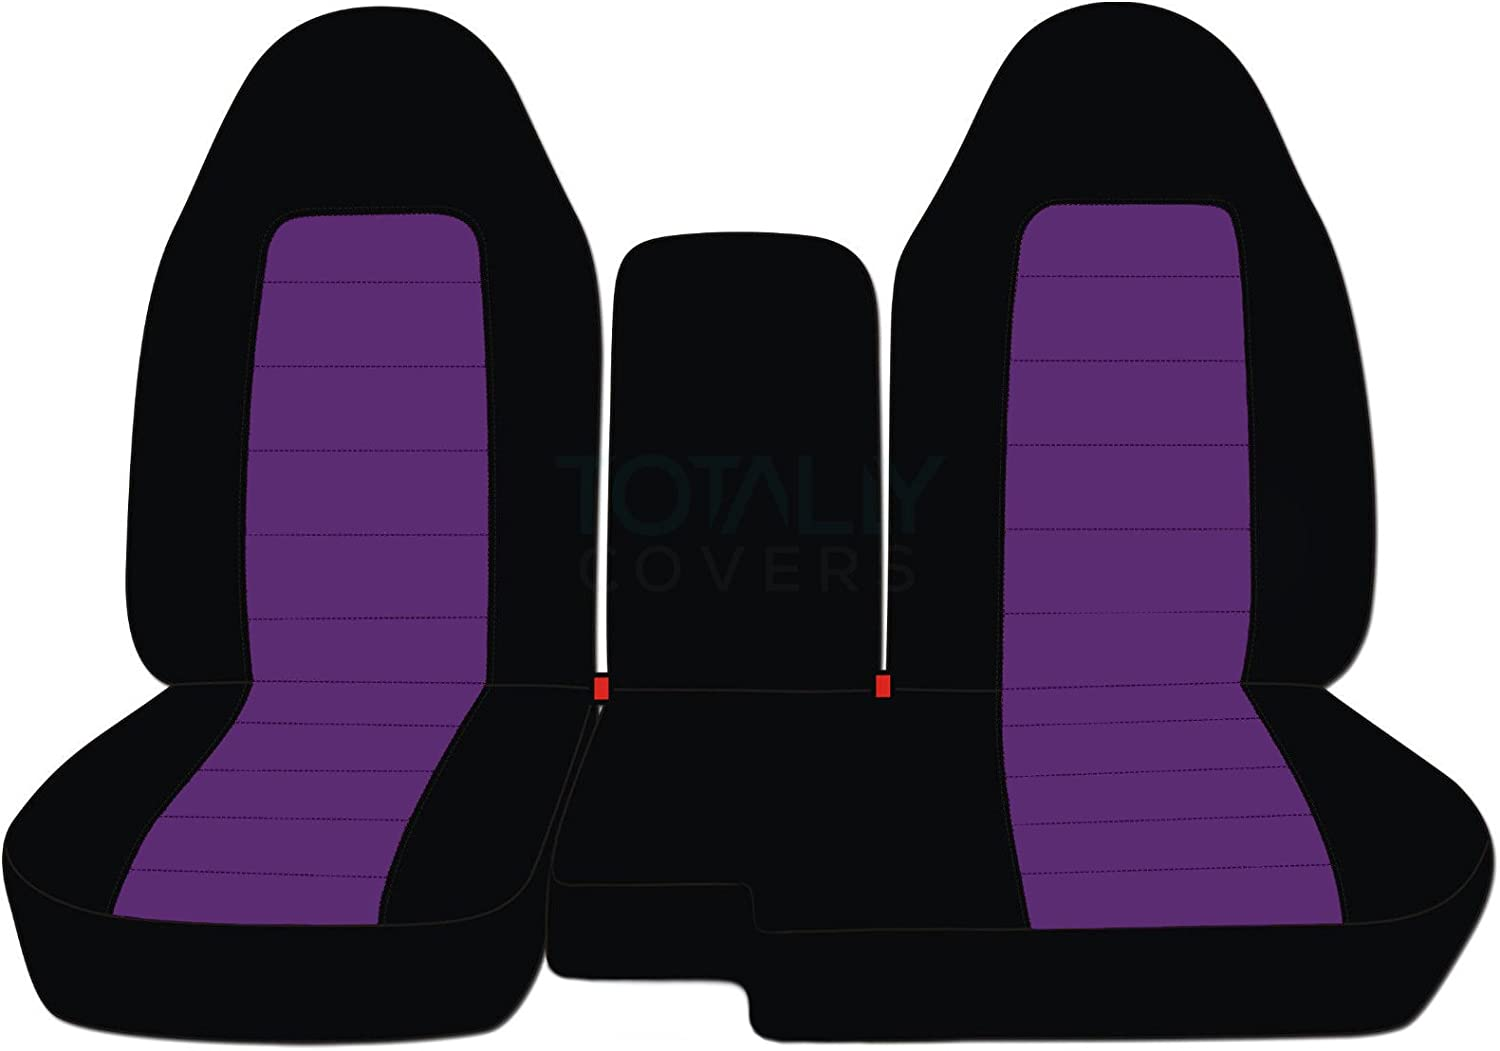 w Center Armrest//Console Cover: Black /& Dark Blue Totally Covers Compatible with 2004-2012 Ford Ranger//Mazda B-Series Two-Tone Truck Seat Covers 60//40 Split Bench 21 Colors